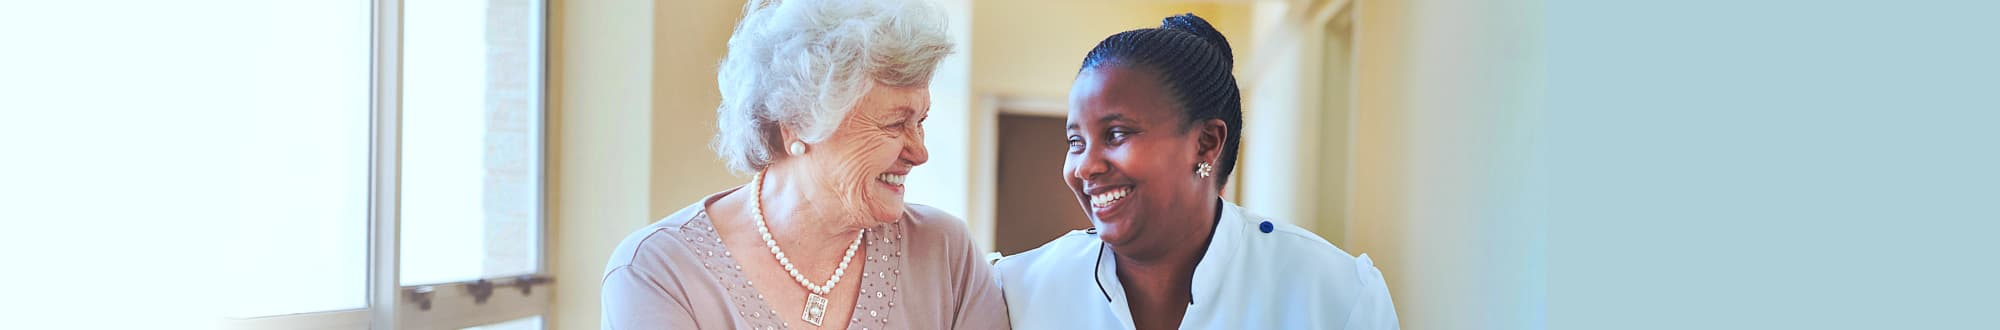 caregiver and nurse smiling